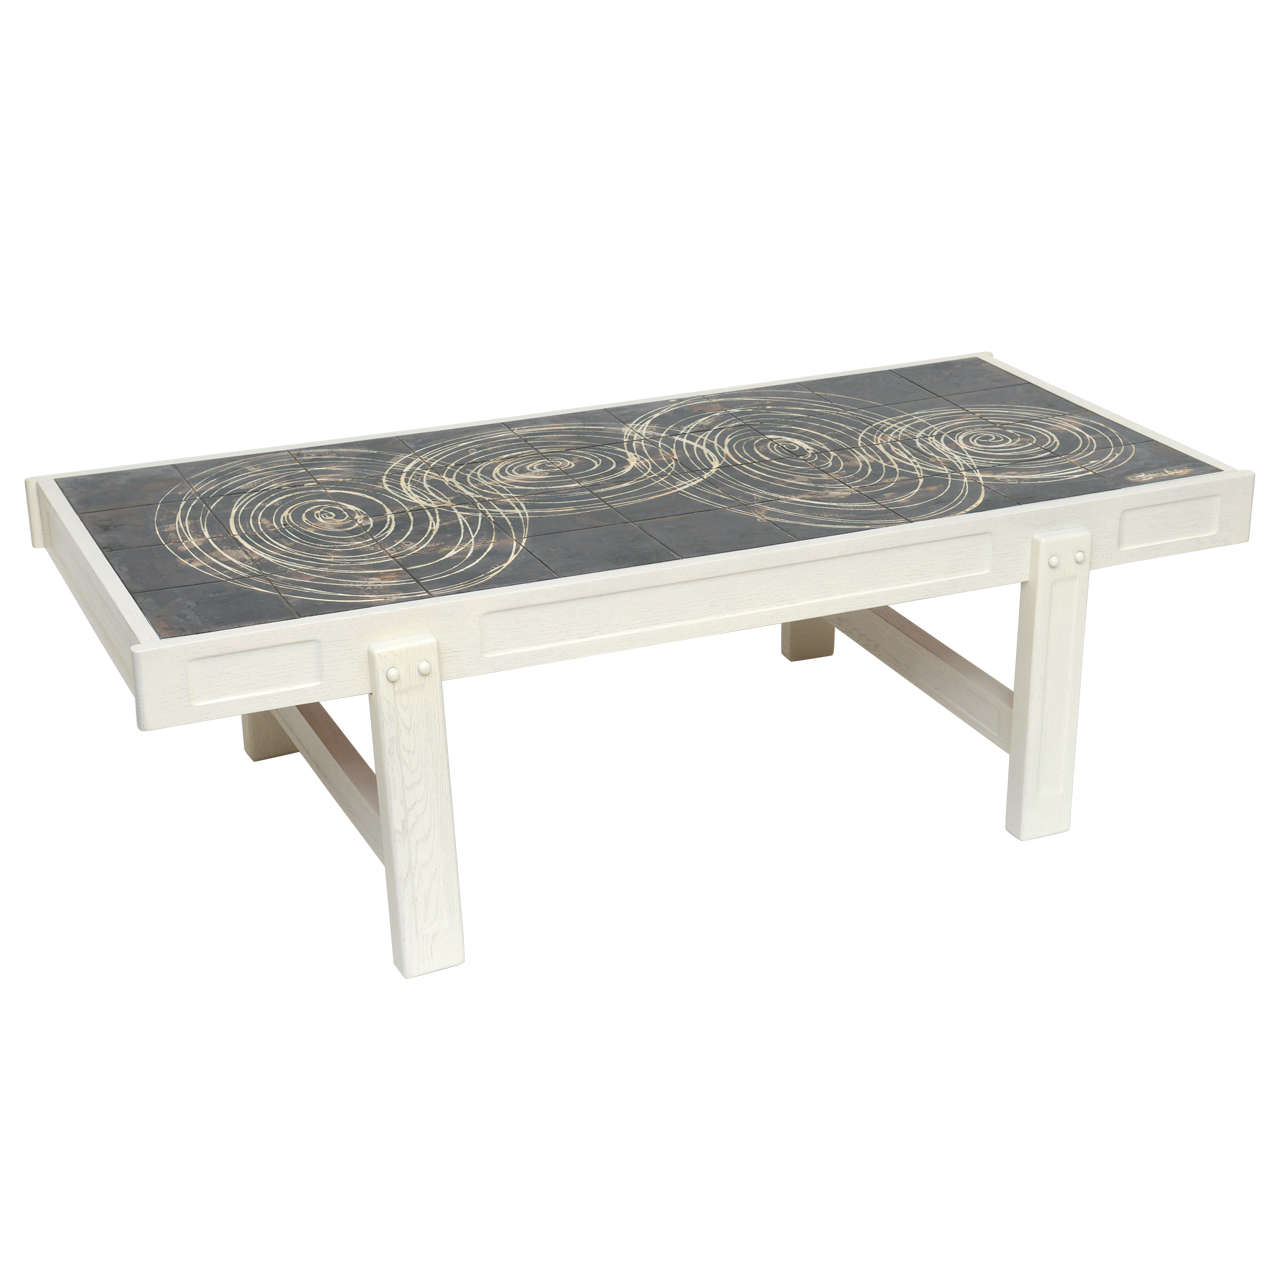 Oak And Tile Coffee Table By Juliette Belarti At 1stdibs